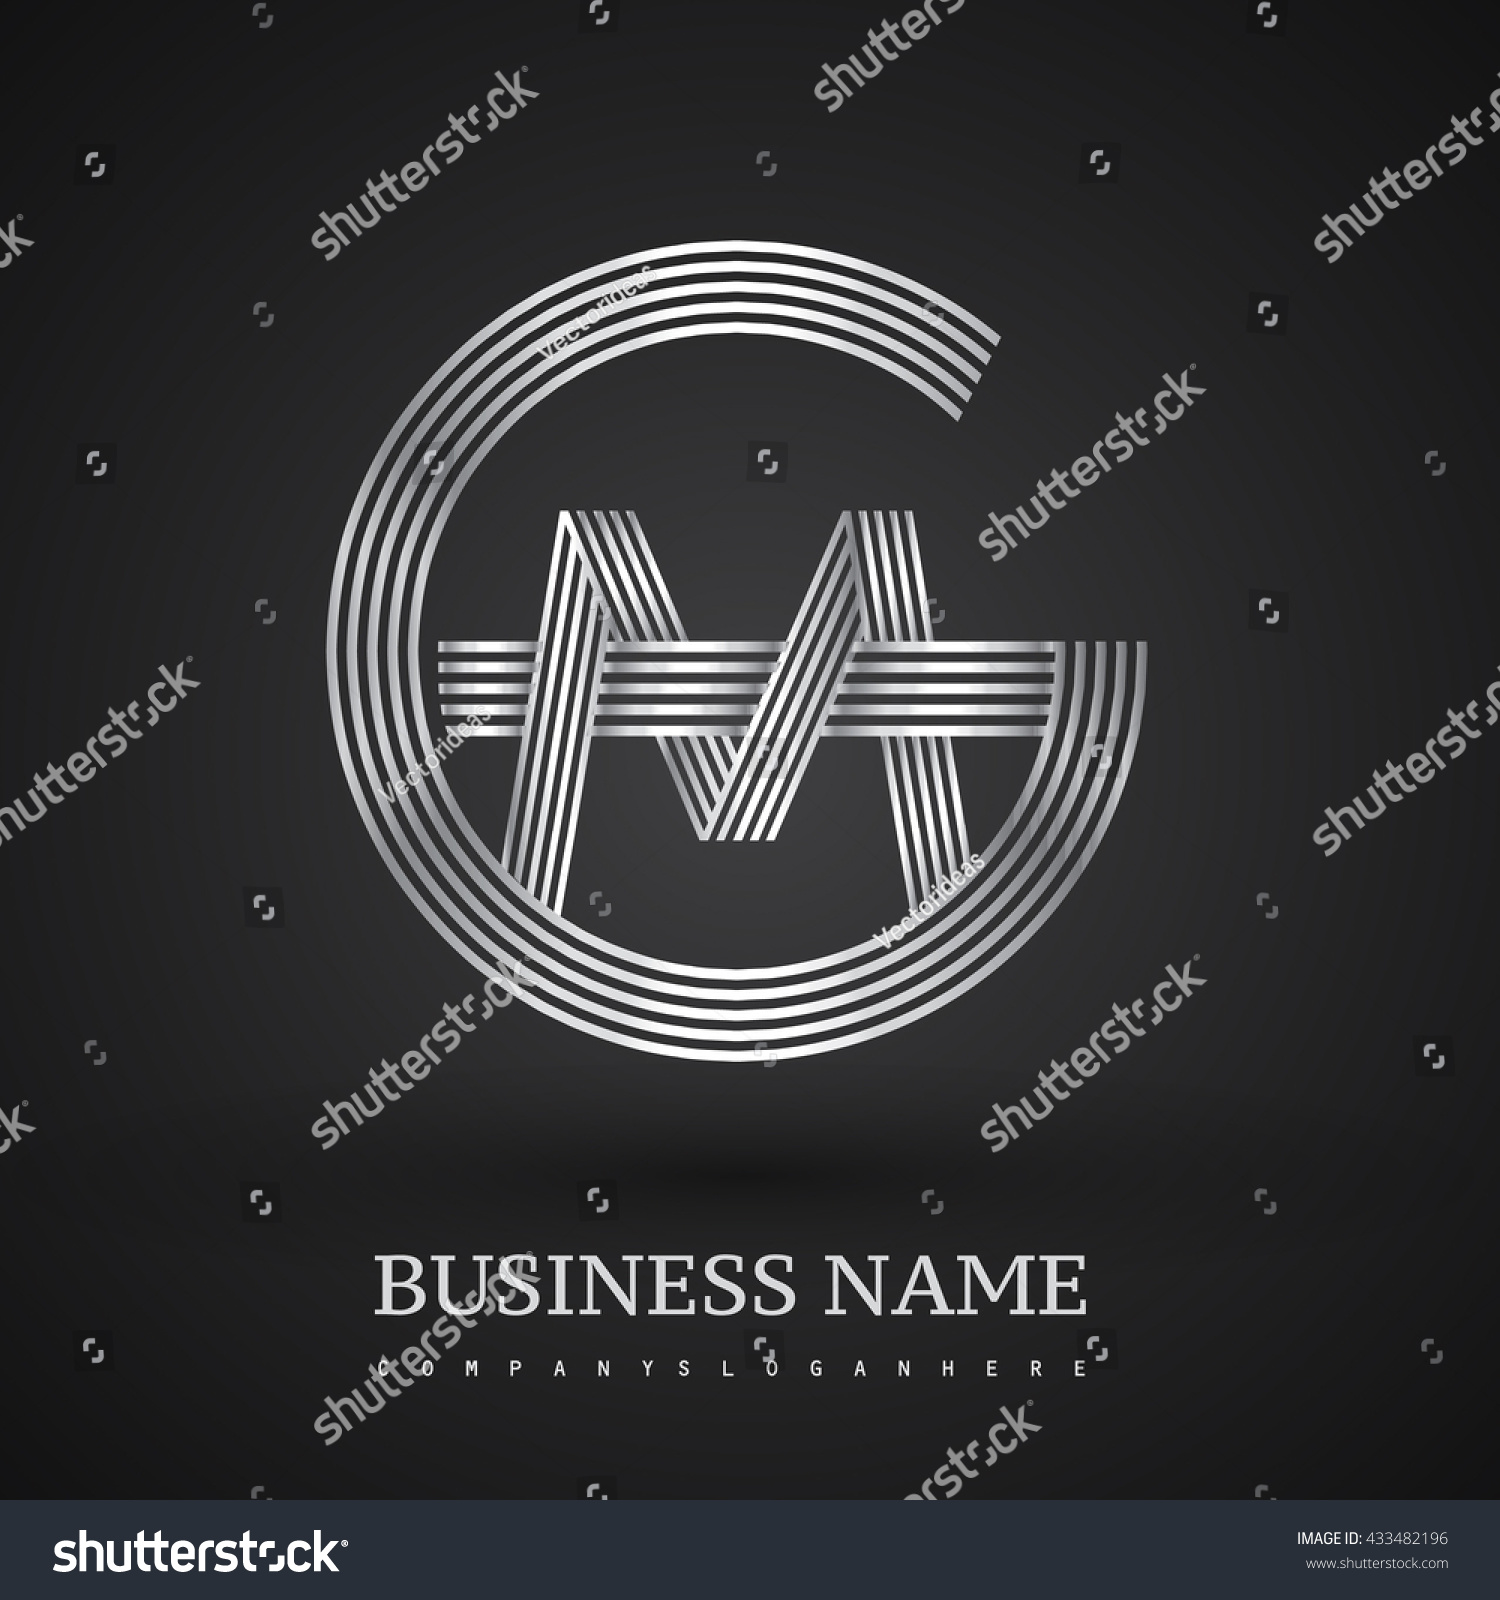 Letter Gm Mg Linked Logo Design Stock Vector Royalty Free